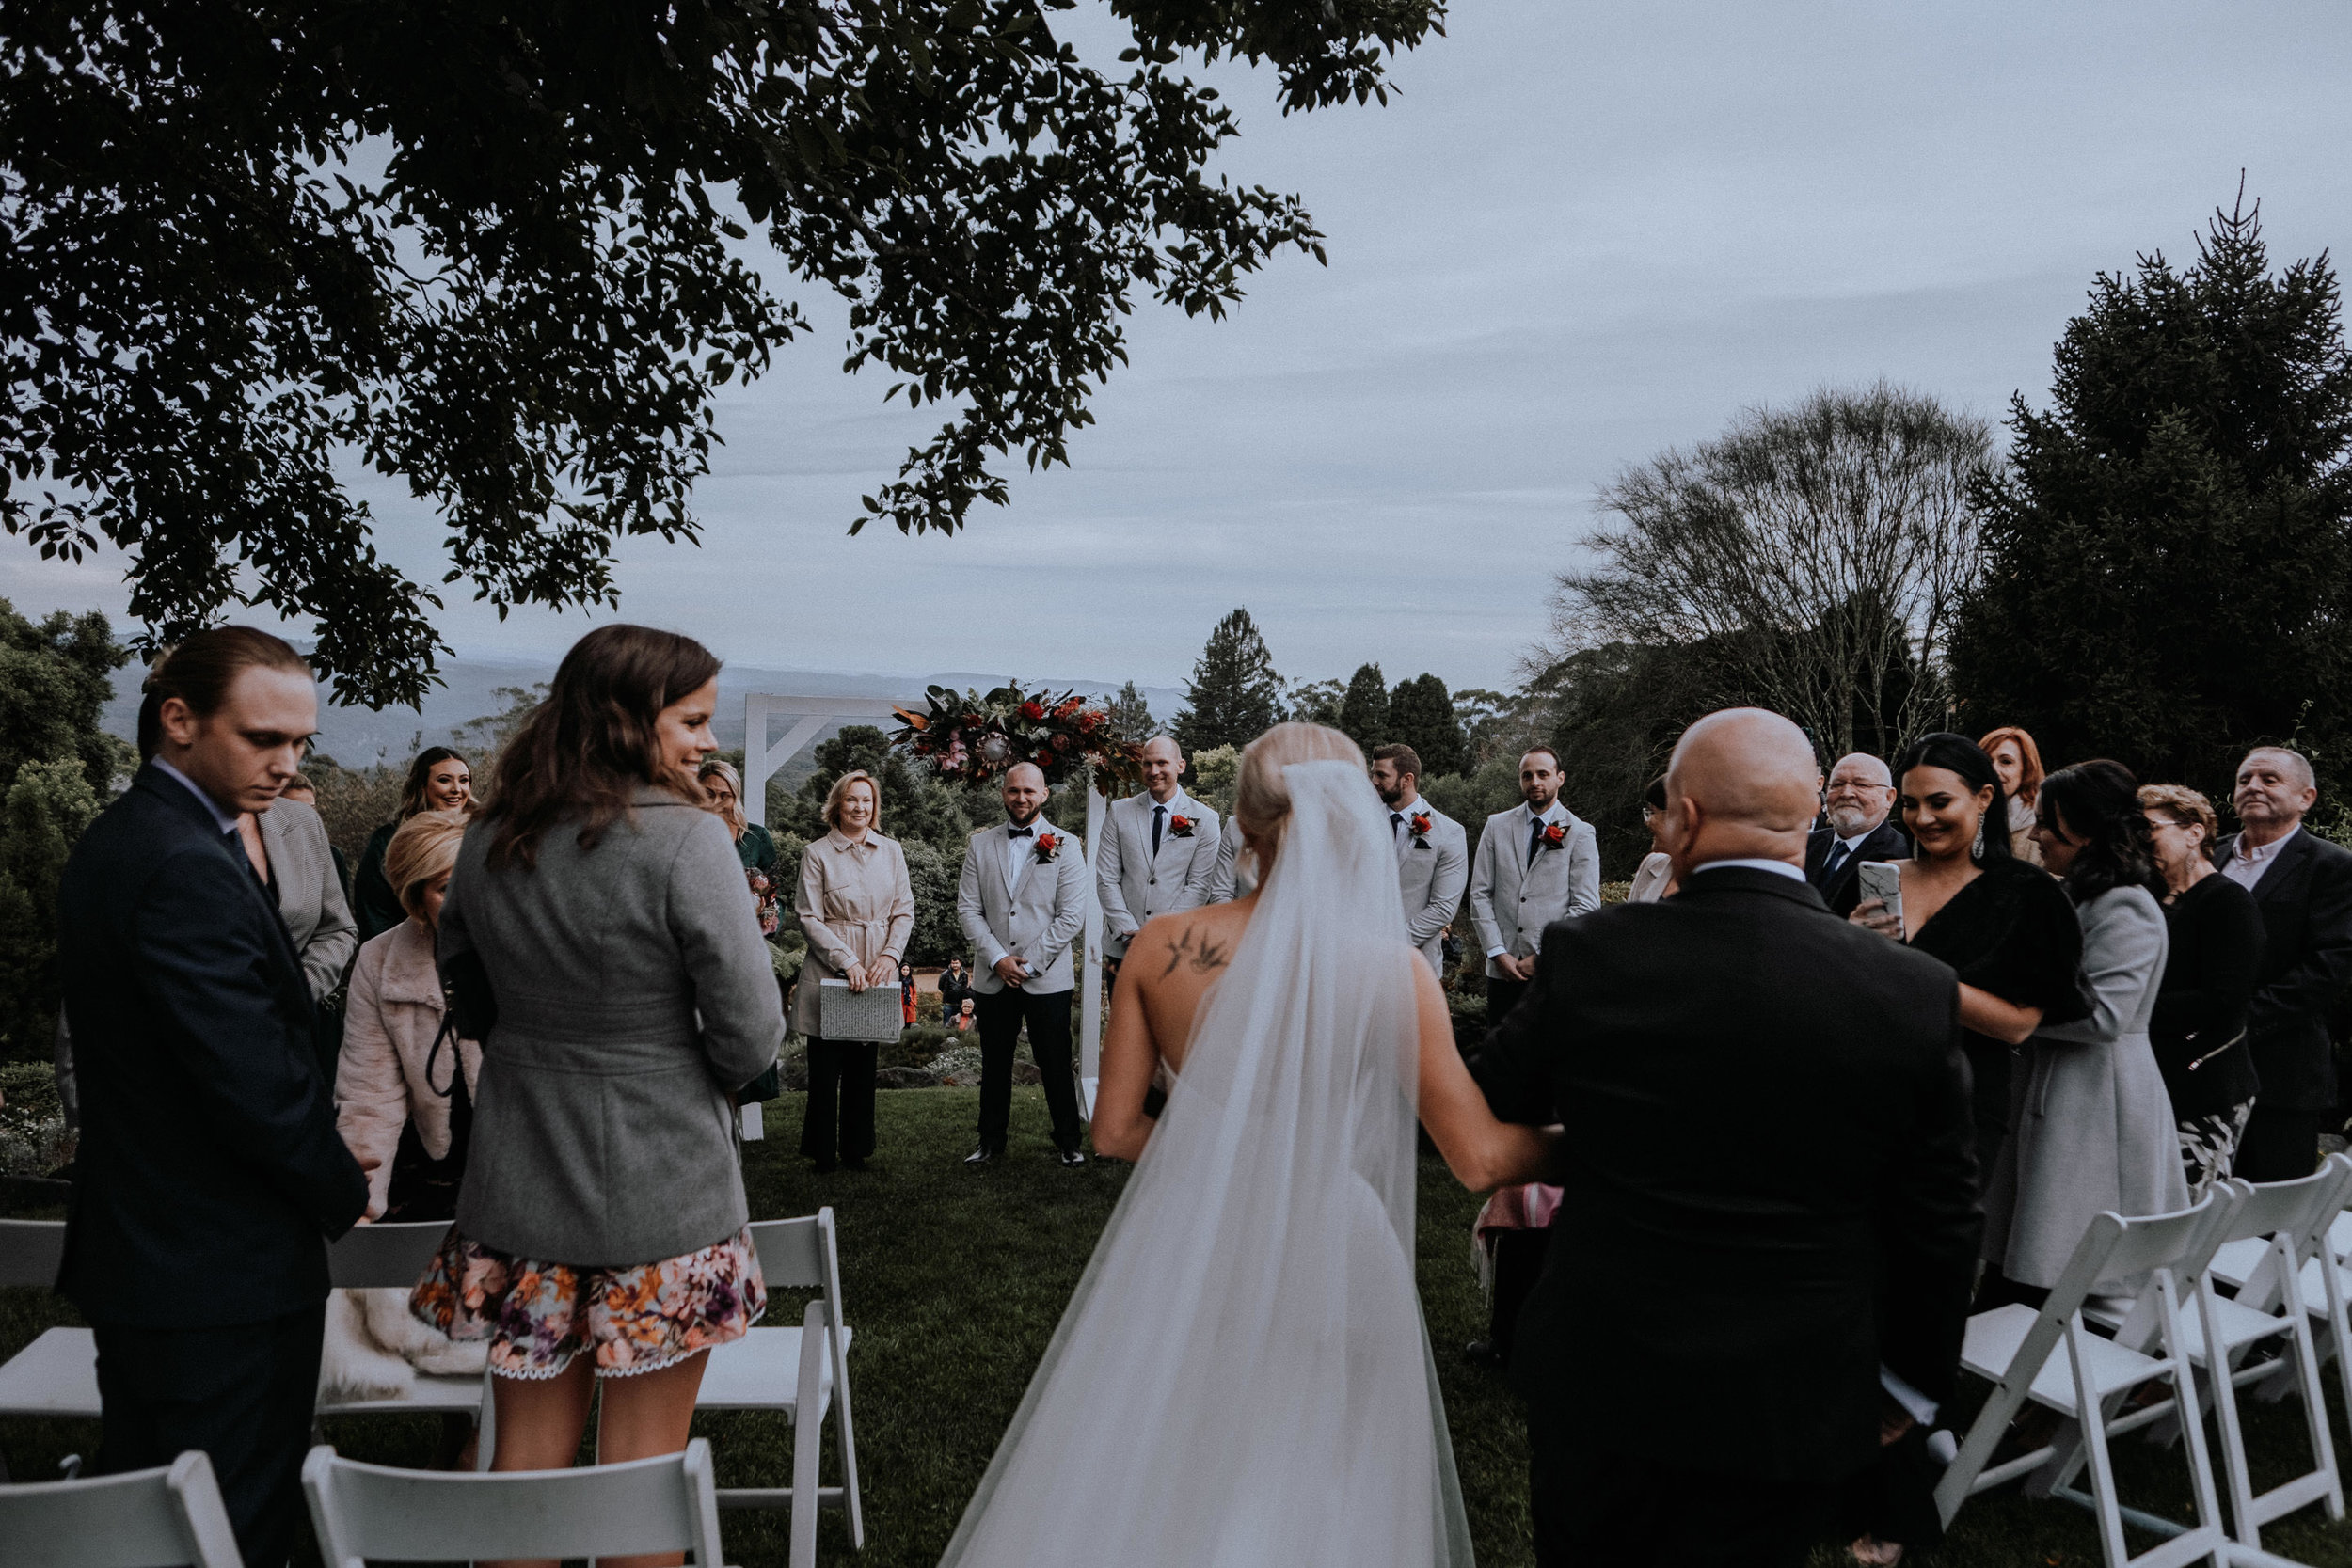 Tearful reactions to seeing the beautiful bride walking down the aisle at Mt Tomah Botanic Gardens